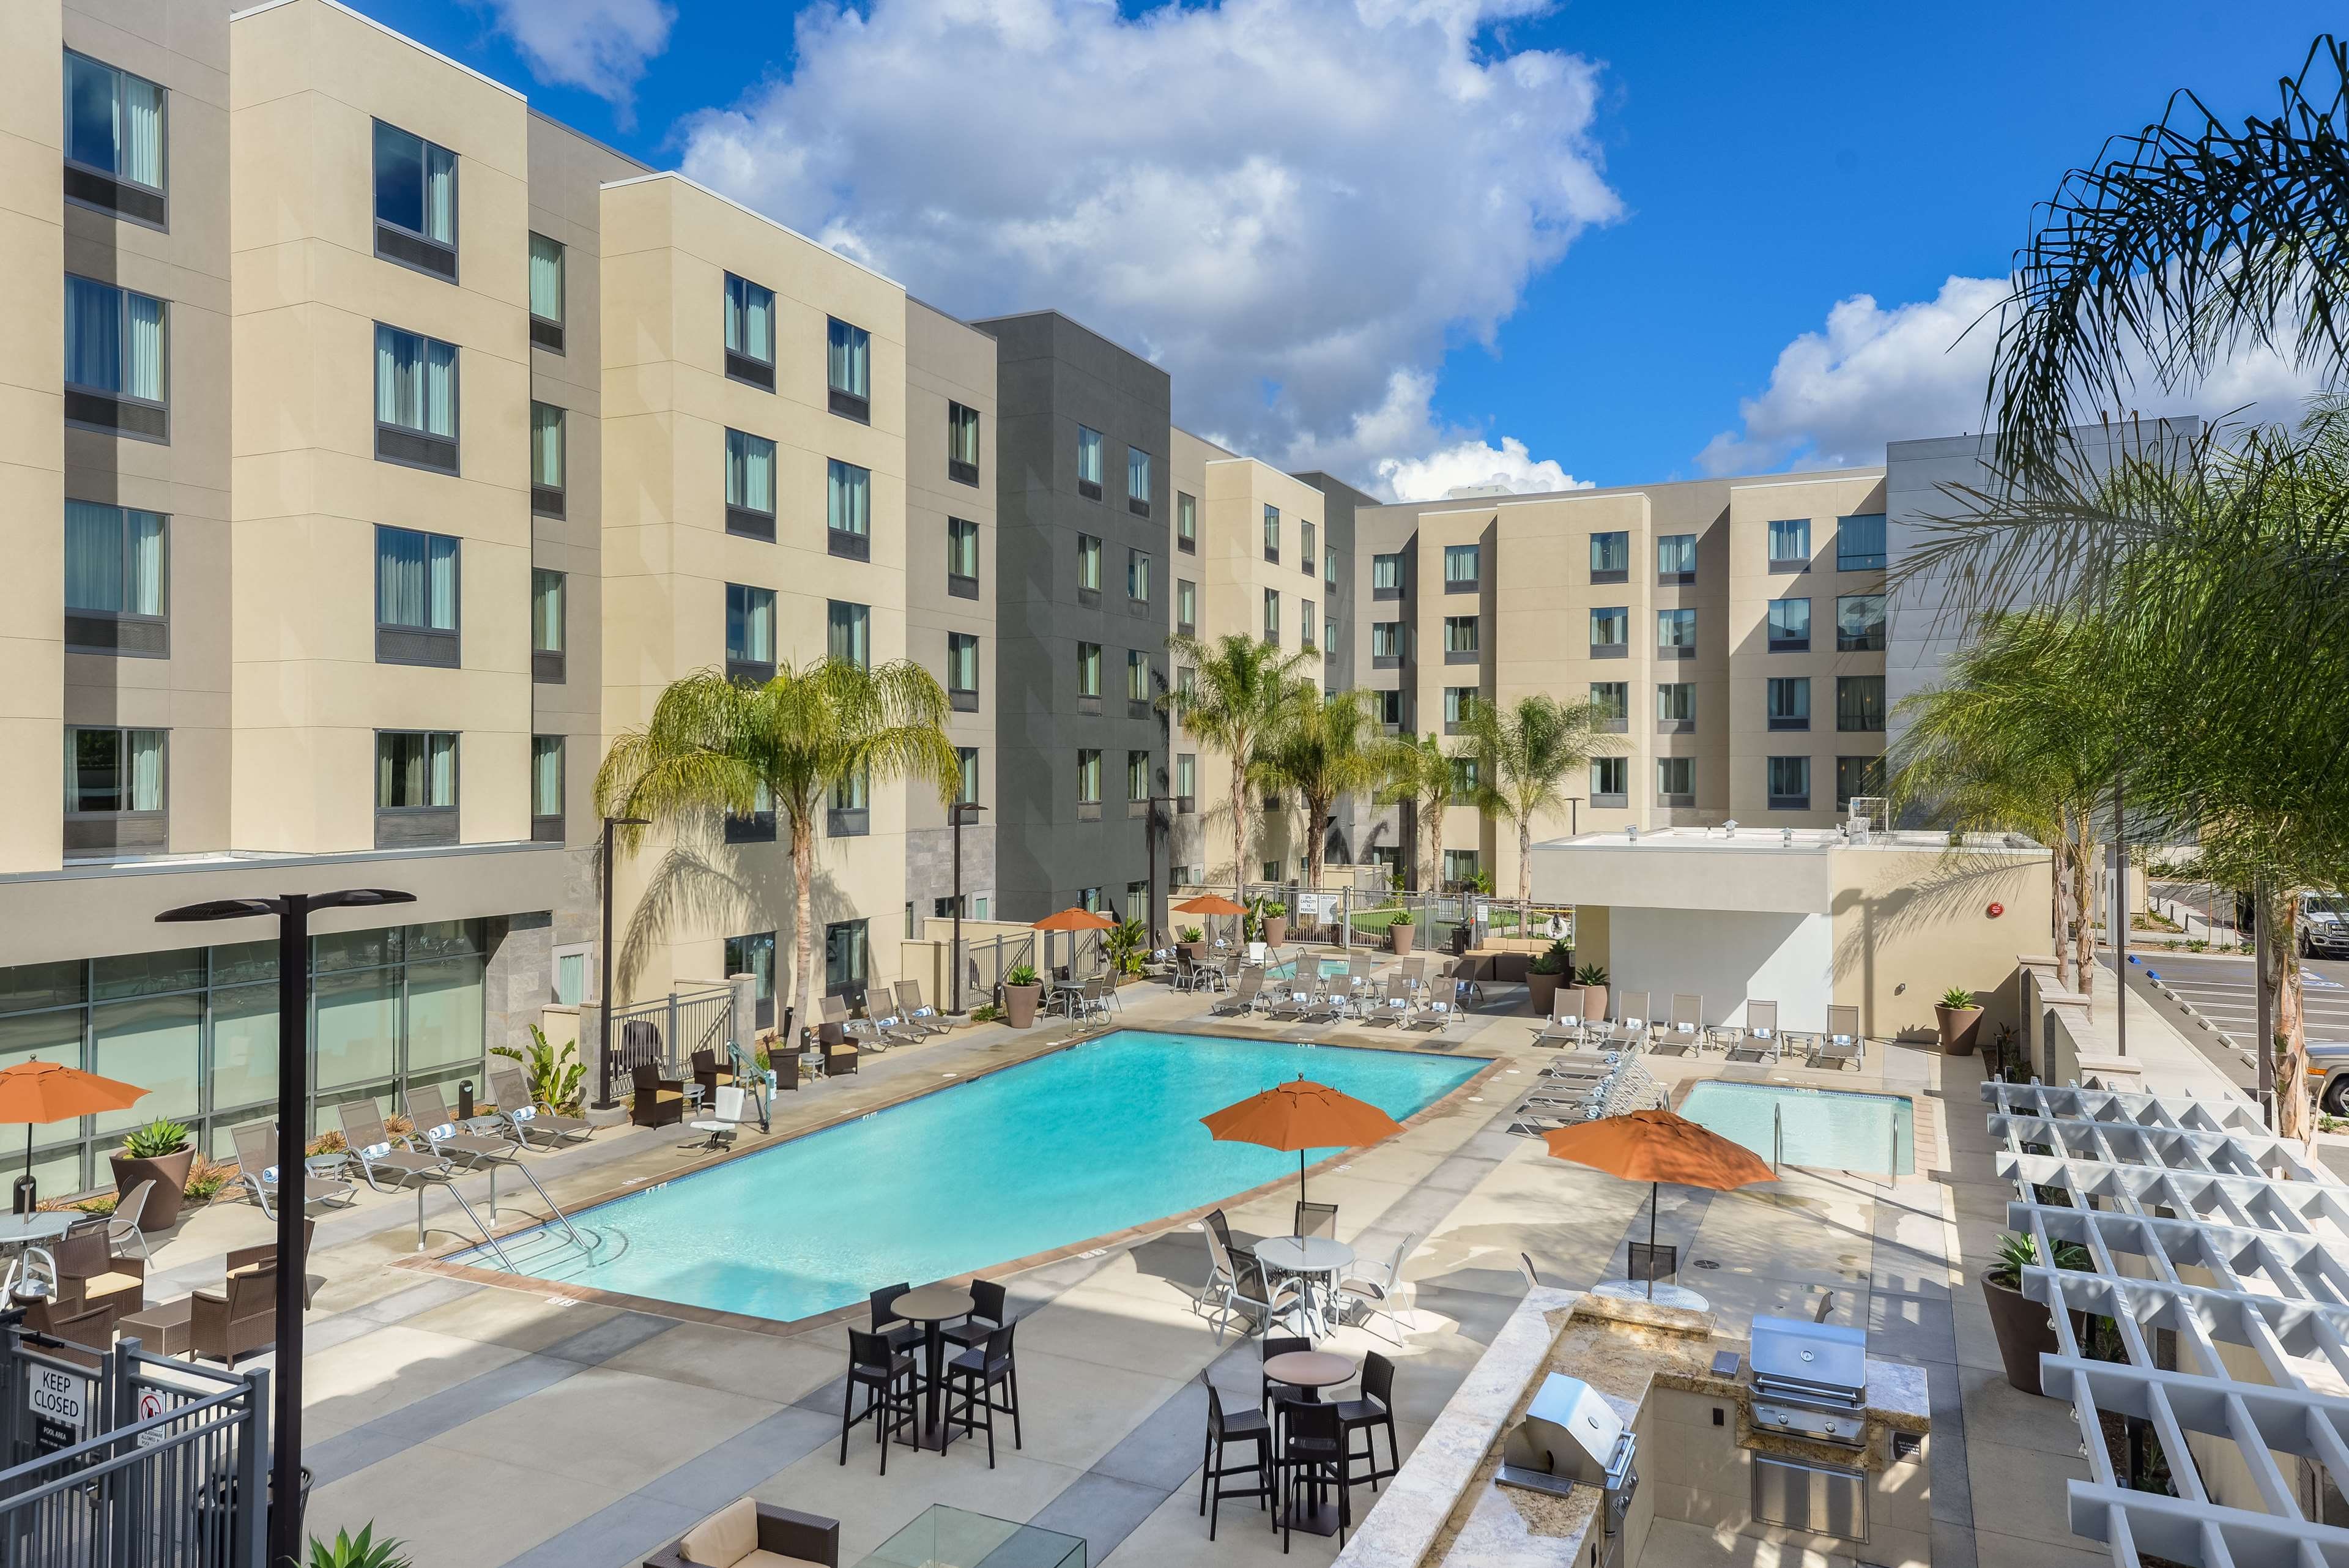 Homewood Suites by Hilton Anaheim Resort - Convention Center image 4